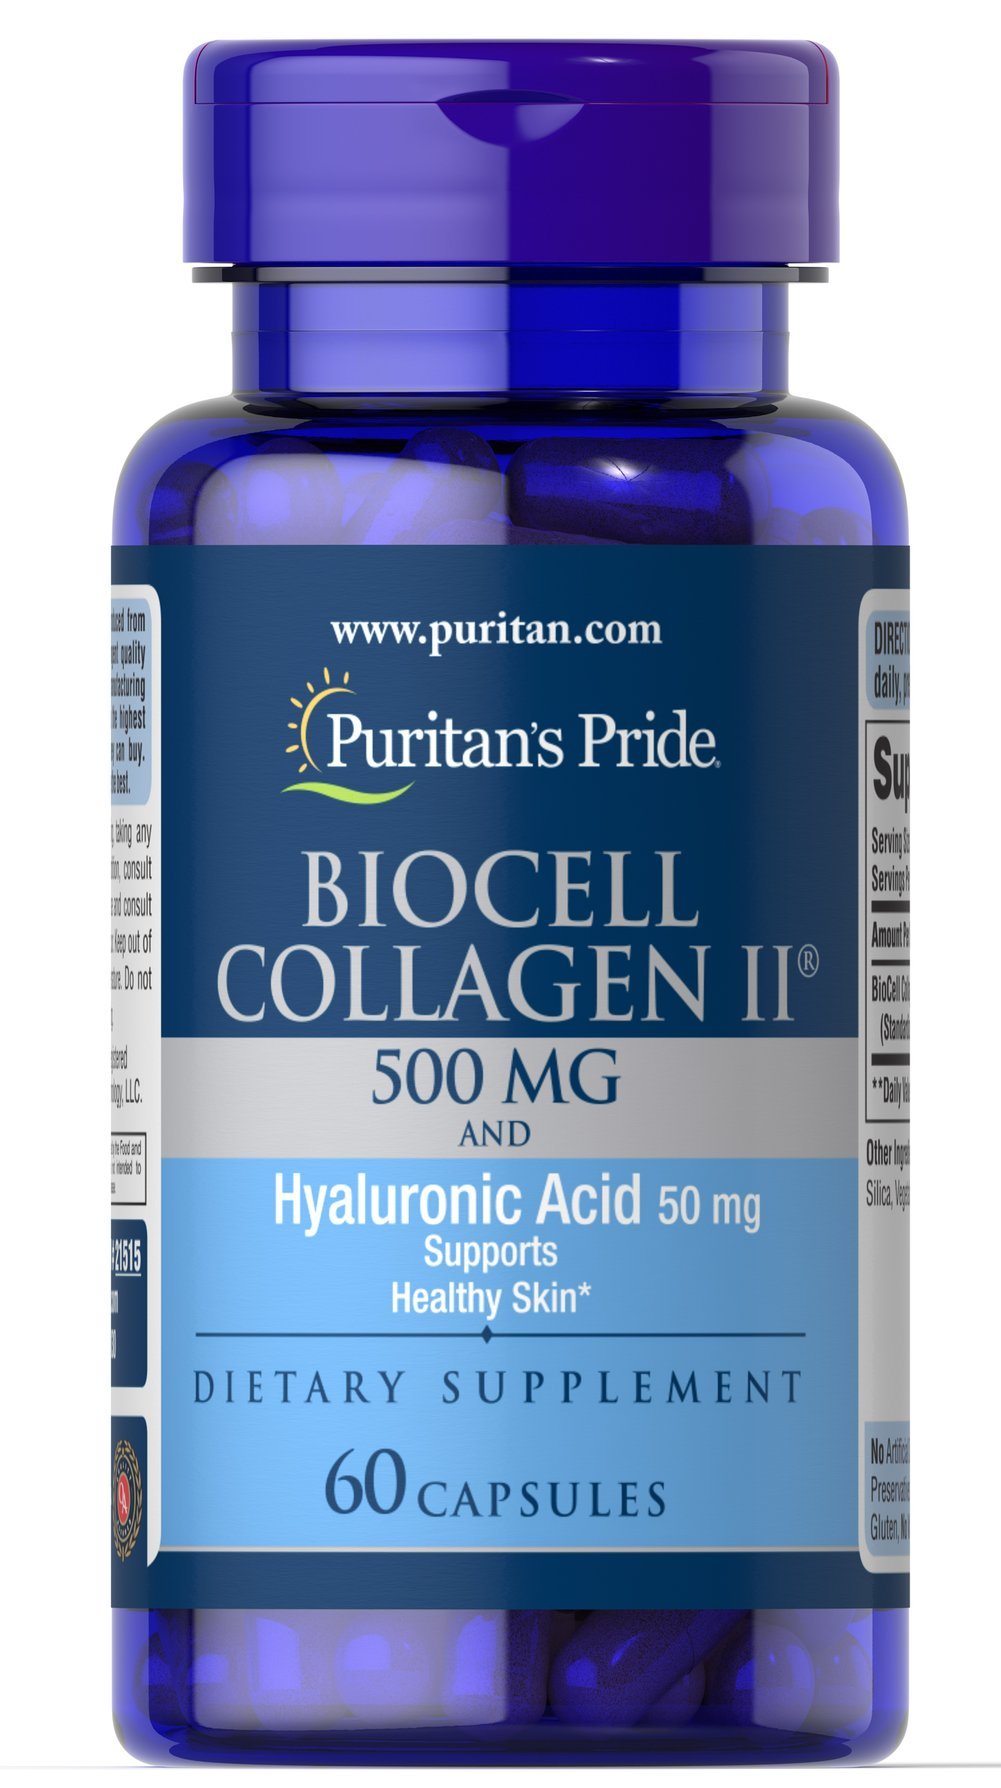 Biocell Collagen II 500 mg and Hyaluronic Acid 50mg